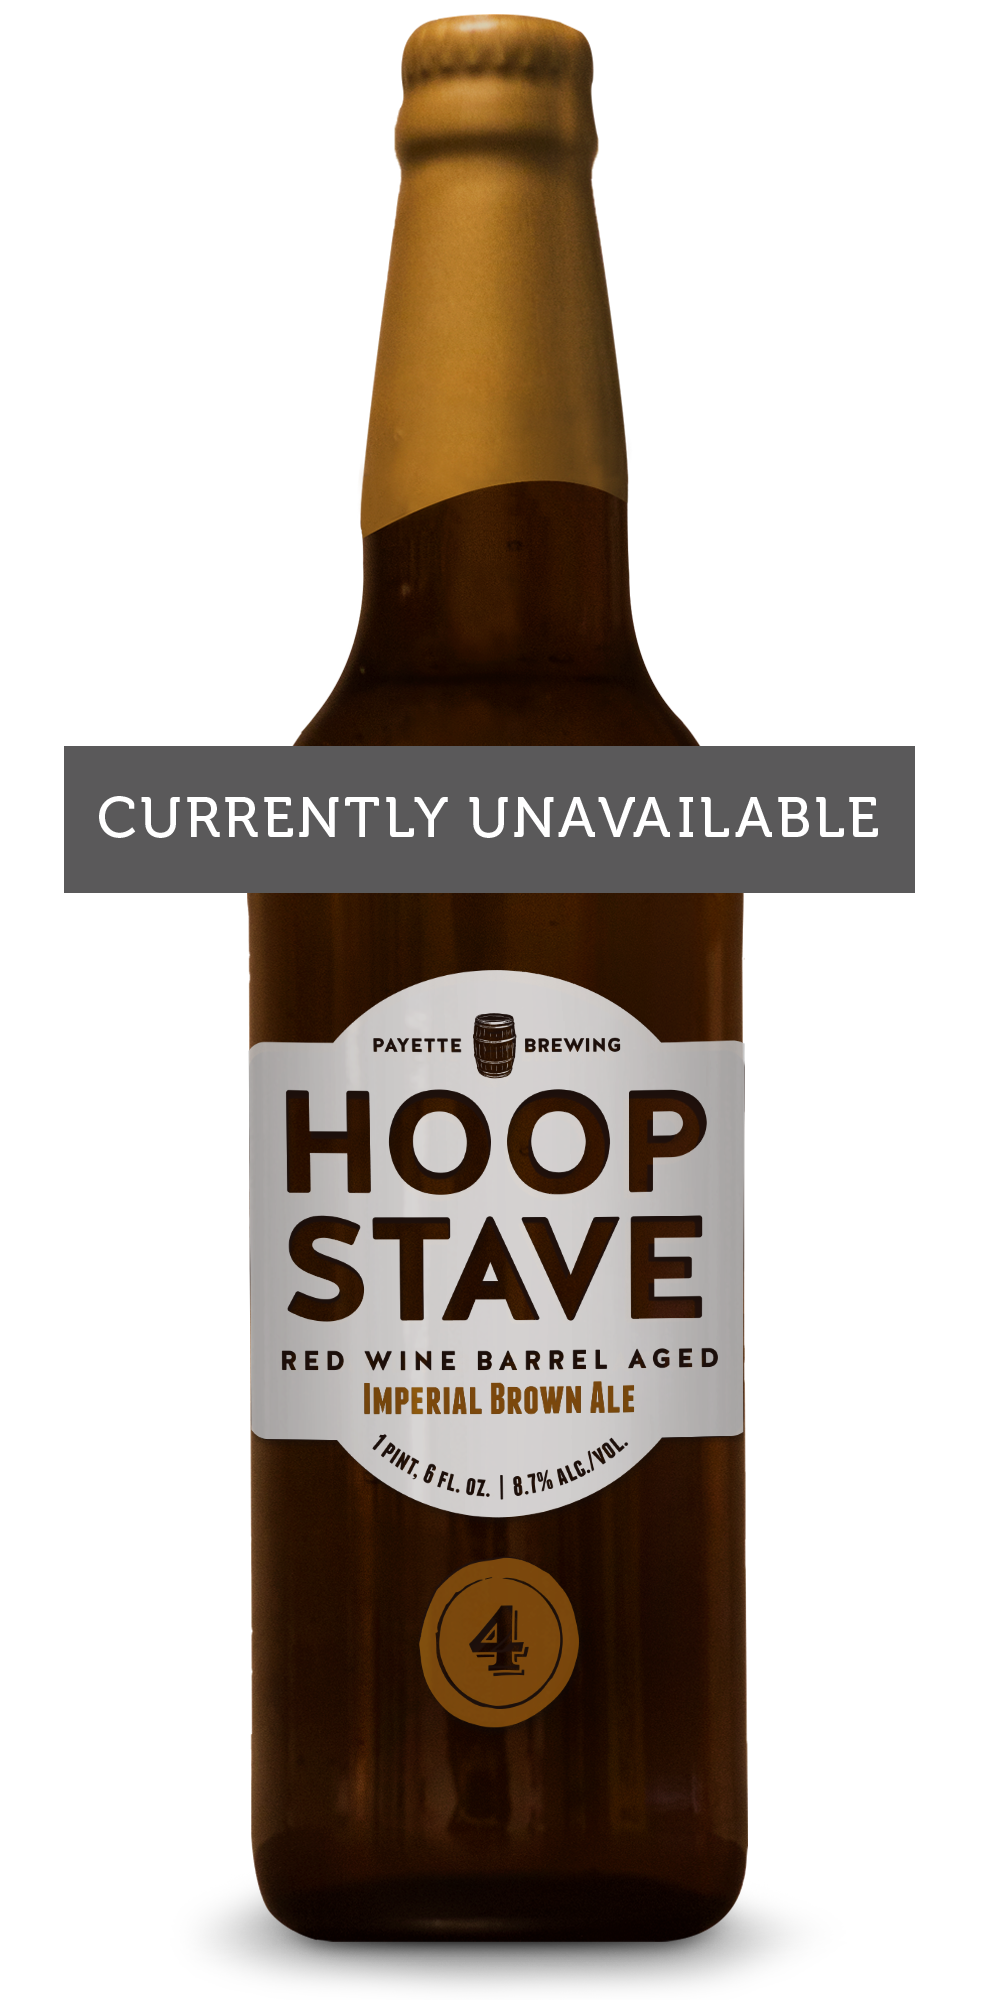 PayetteBrewing_Hoop&Stave_No4_Unavailable.png